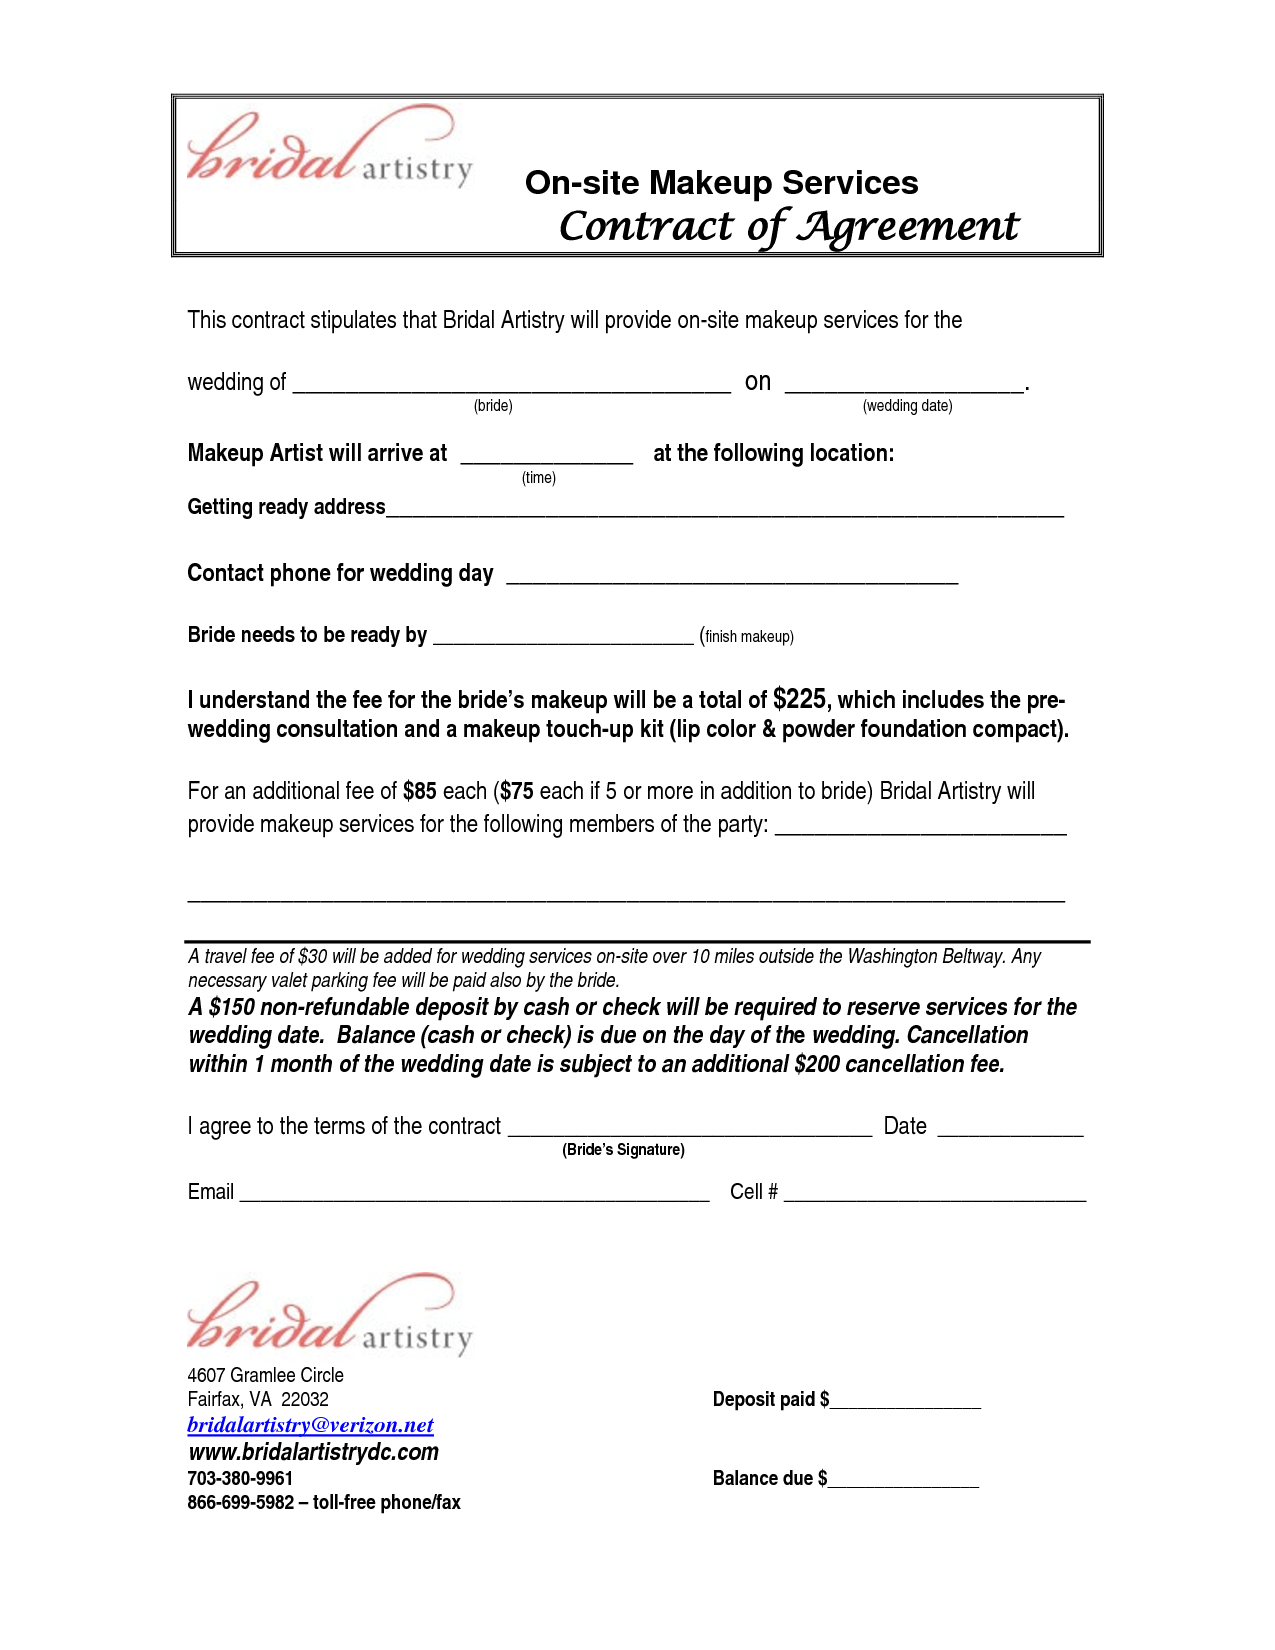 bridalhaircotract | Site Makeup Services Contract Agreement This ...